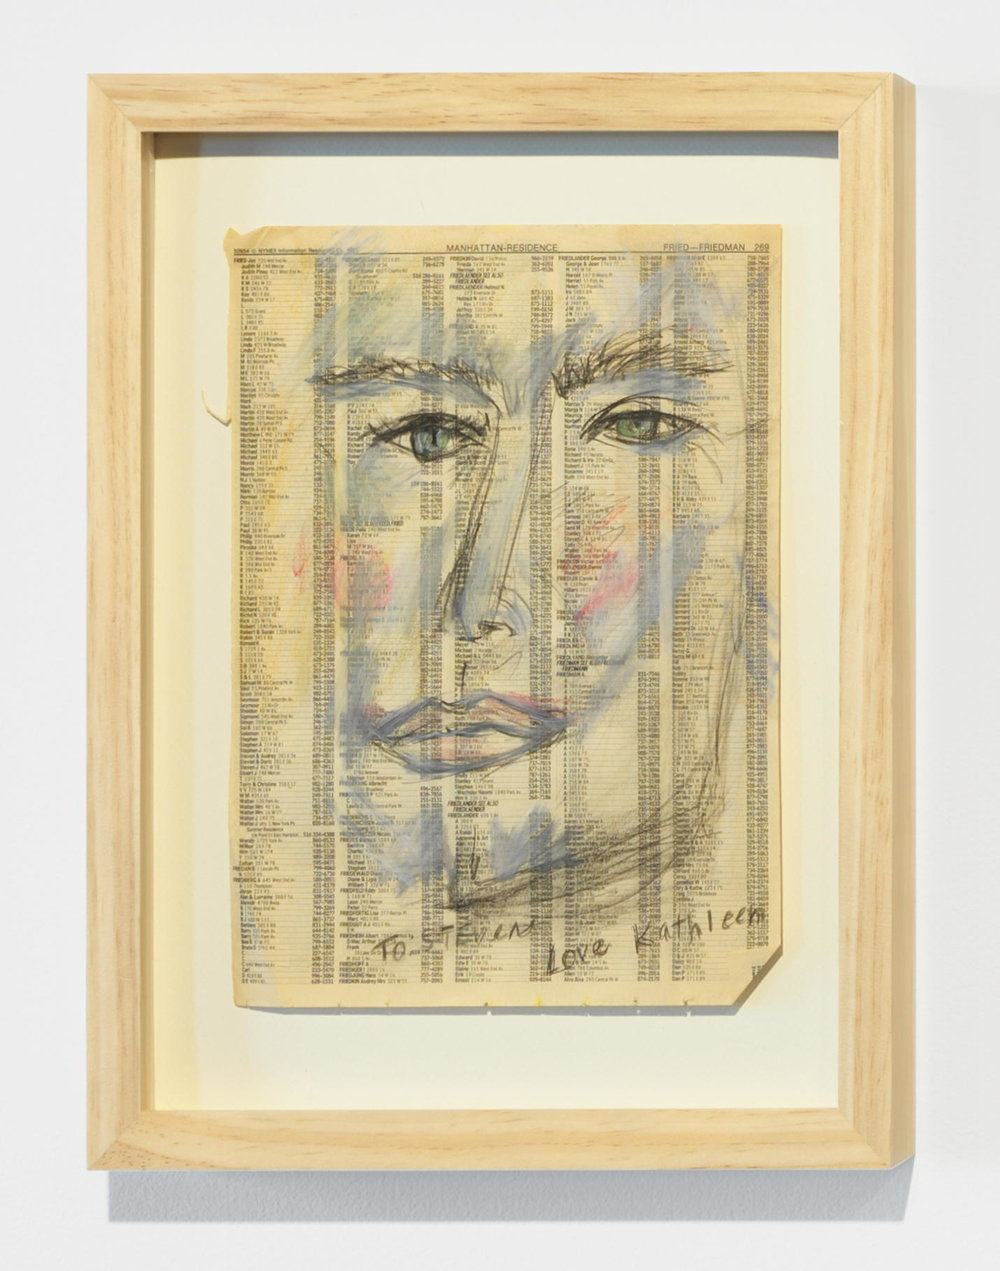 Kathleen White,    To: Stephen, Love Kathleen , 1991, crayon, pencil on phone book page, 15 ¼ × 12 ¼ in.